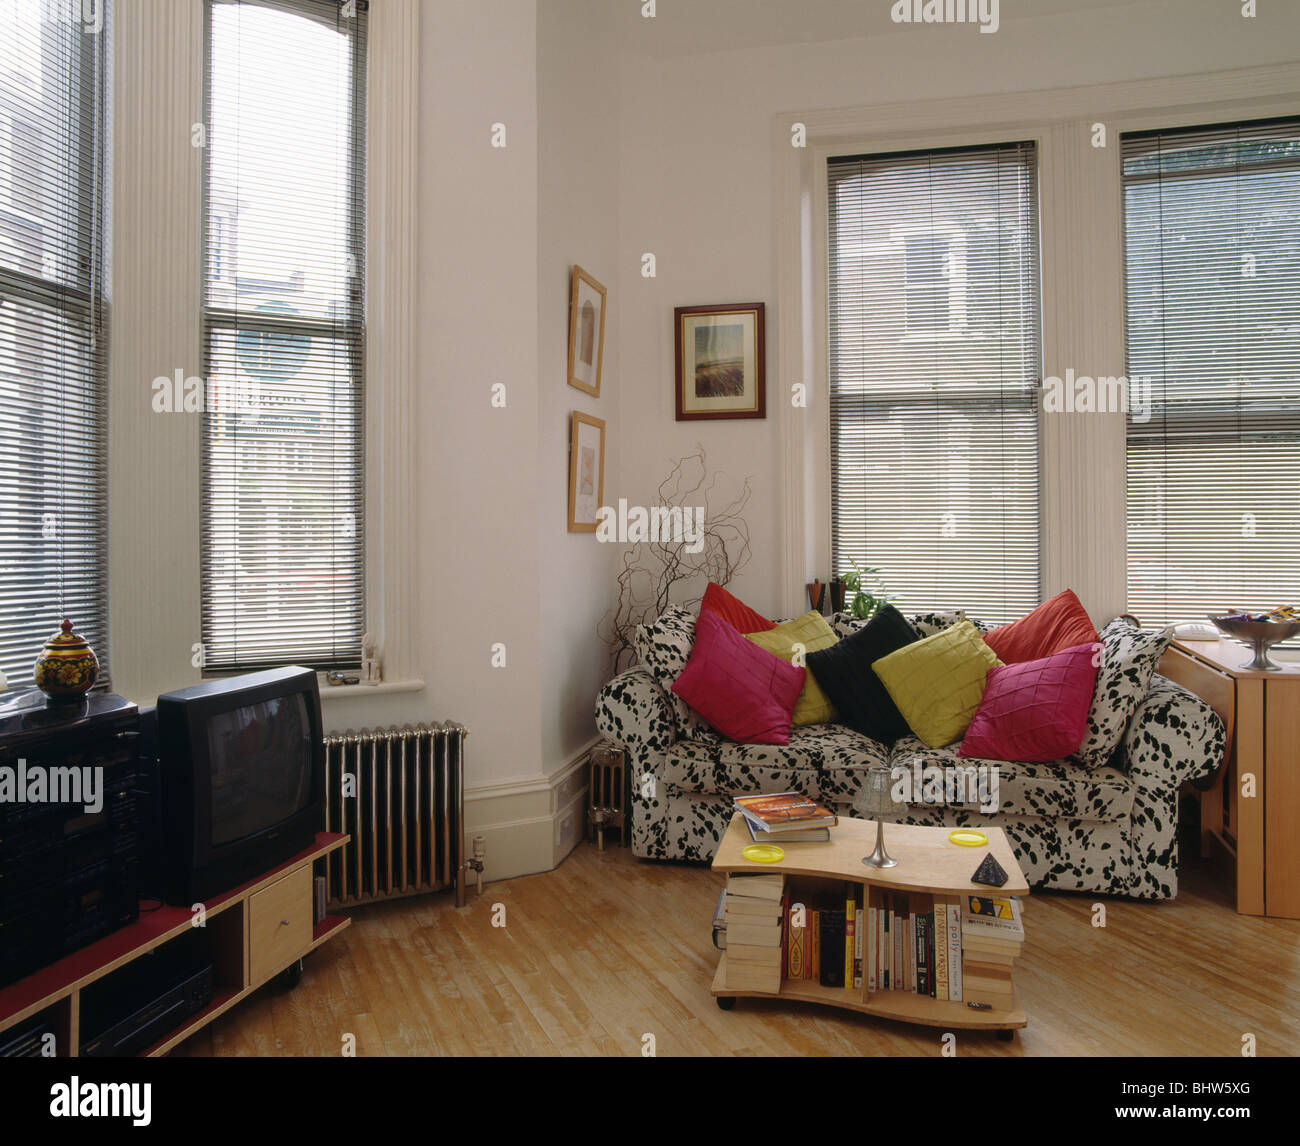 Pink And Lime Green Cushions On Animal Print Sofa Front Of Windows In Stock Photo Alamy